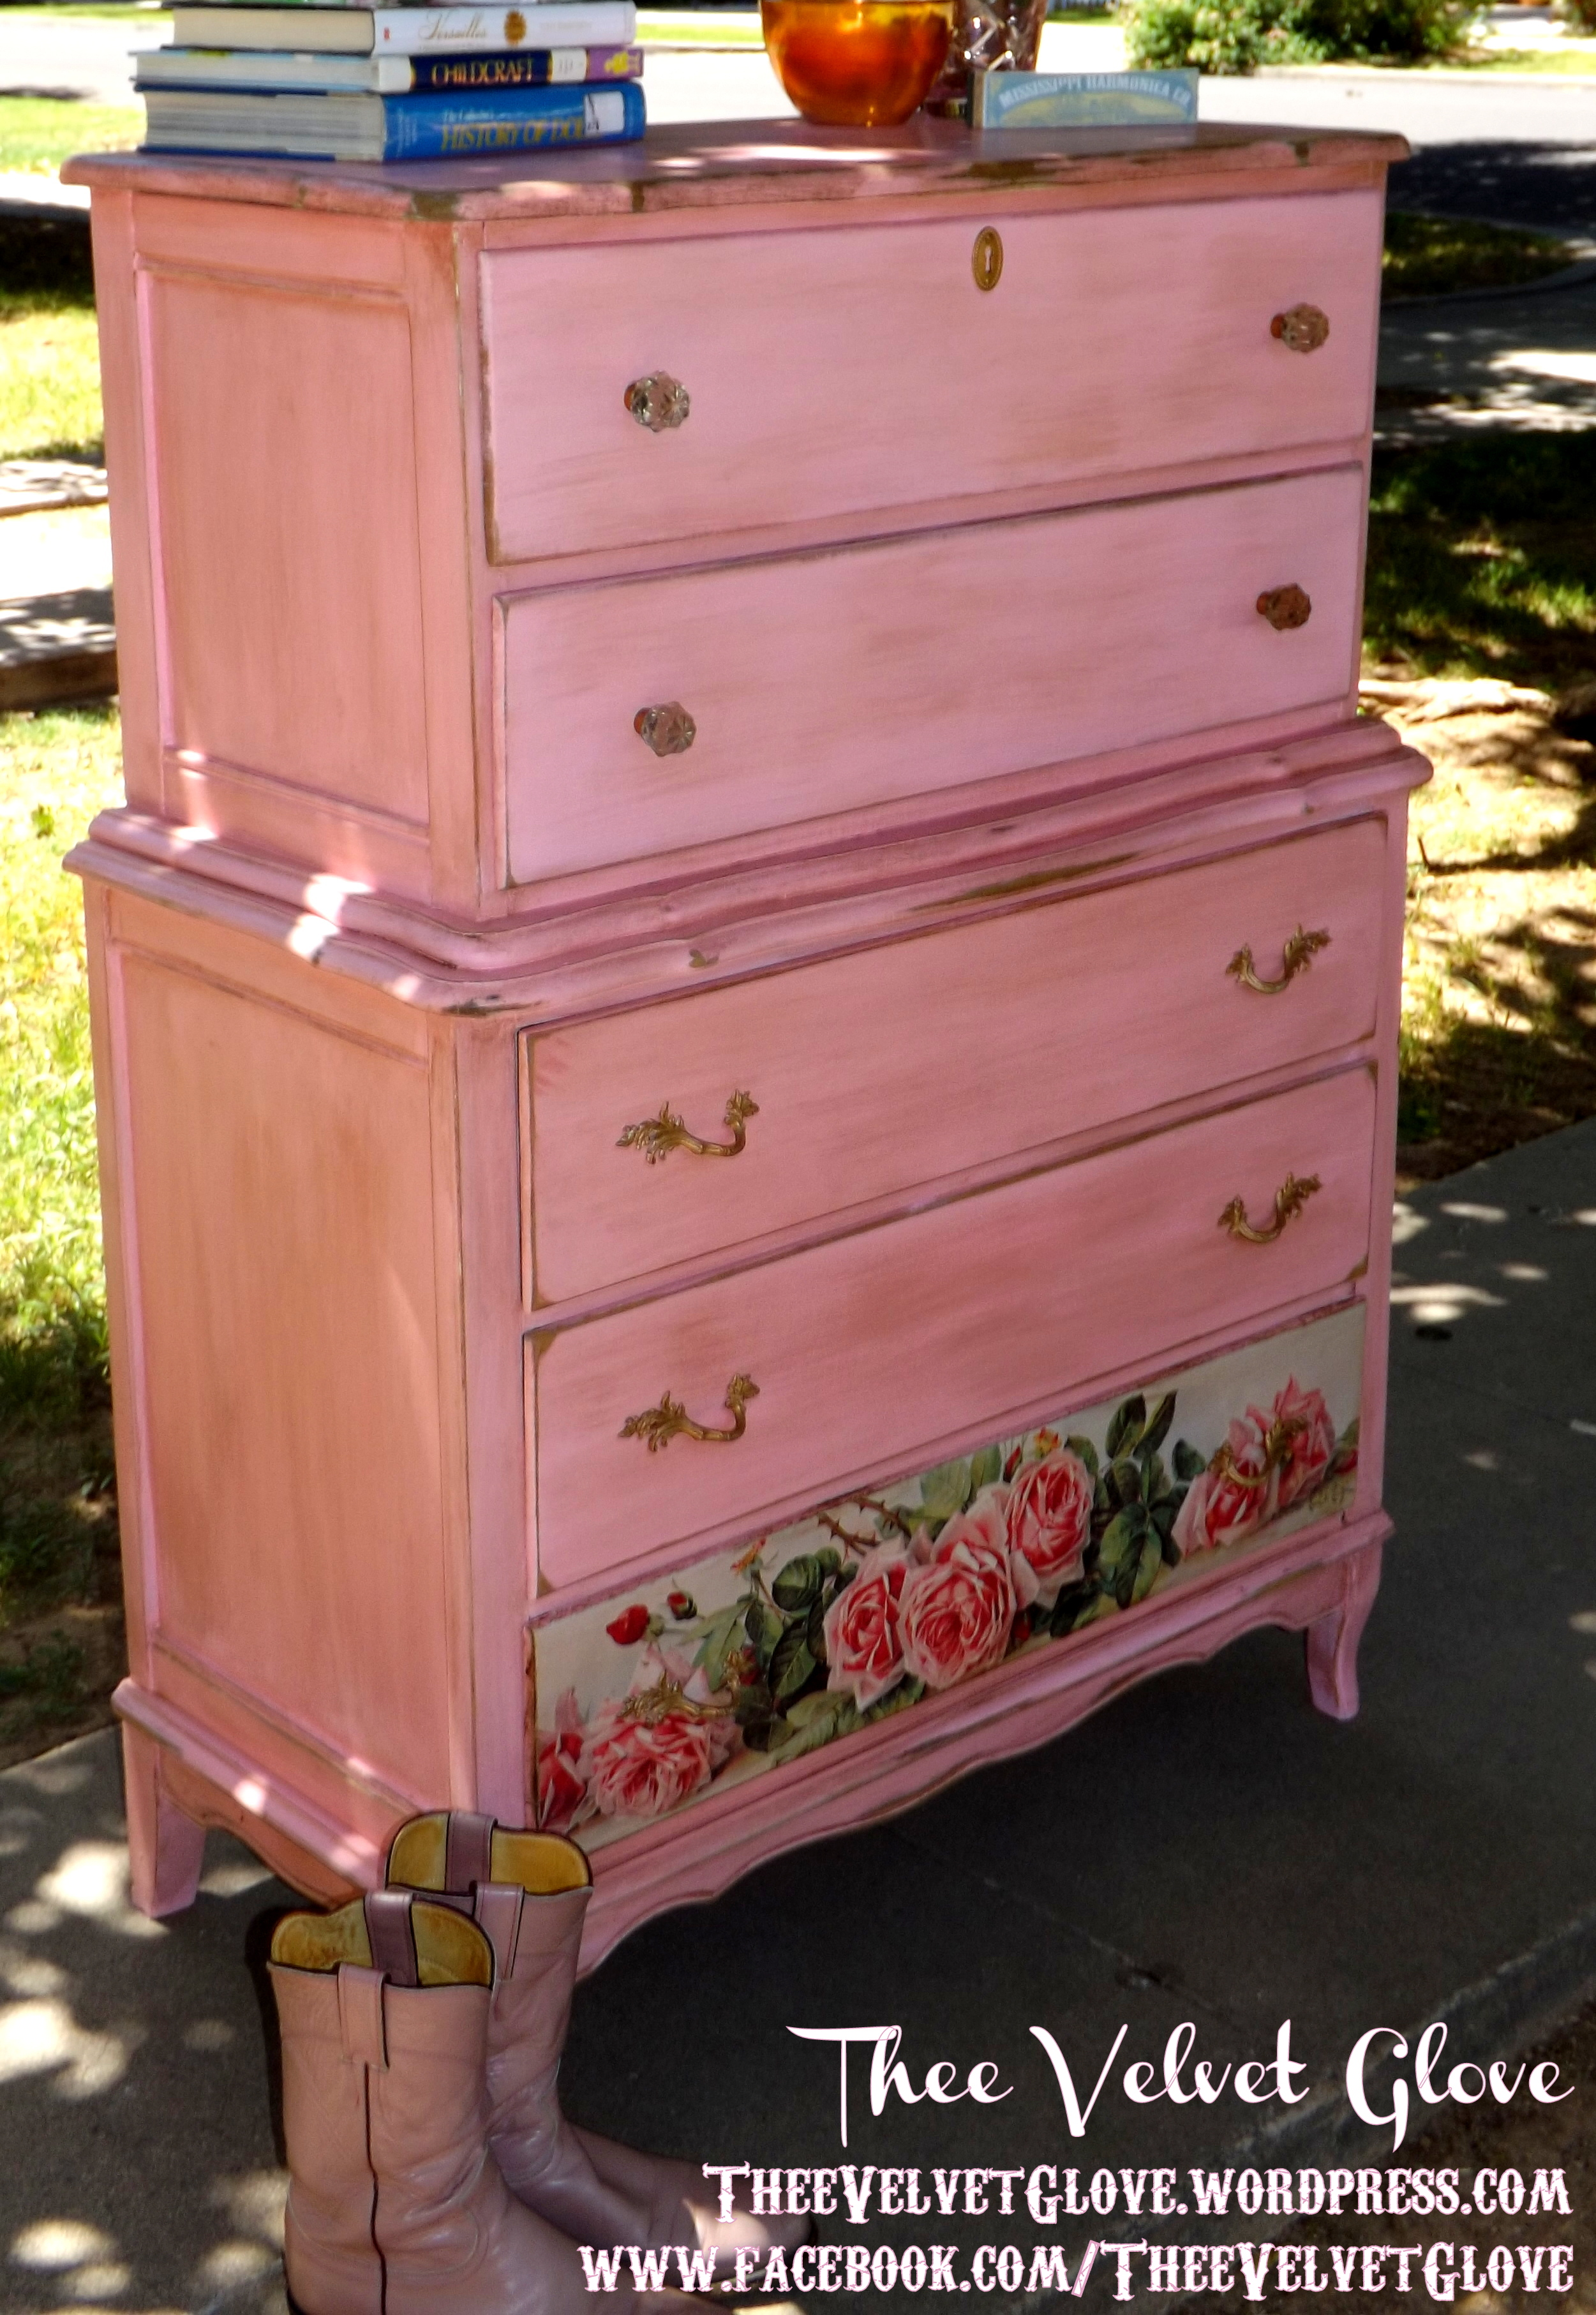 calamity jane distressed pink tallboy chest of drawers. Black Bedroom Furniture Sets. Home Design Ideas